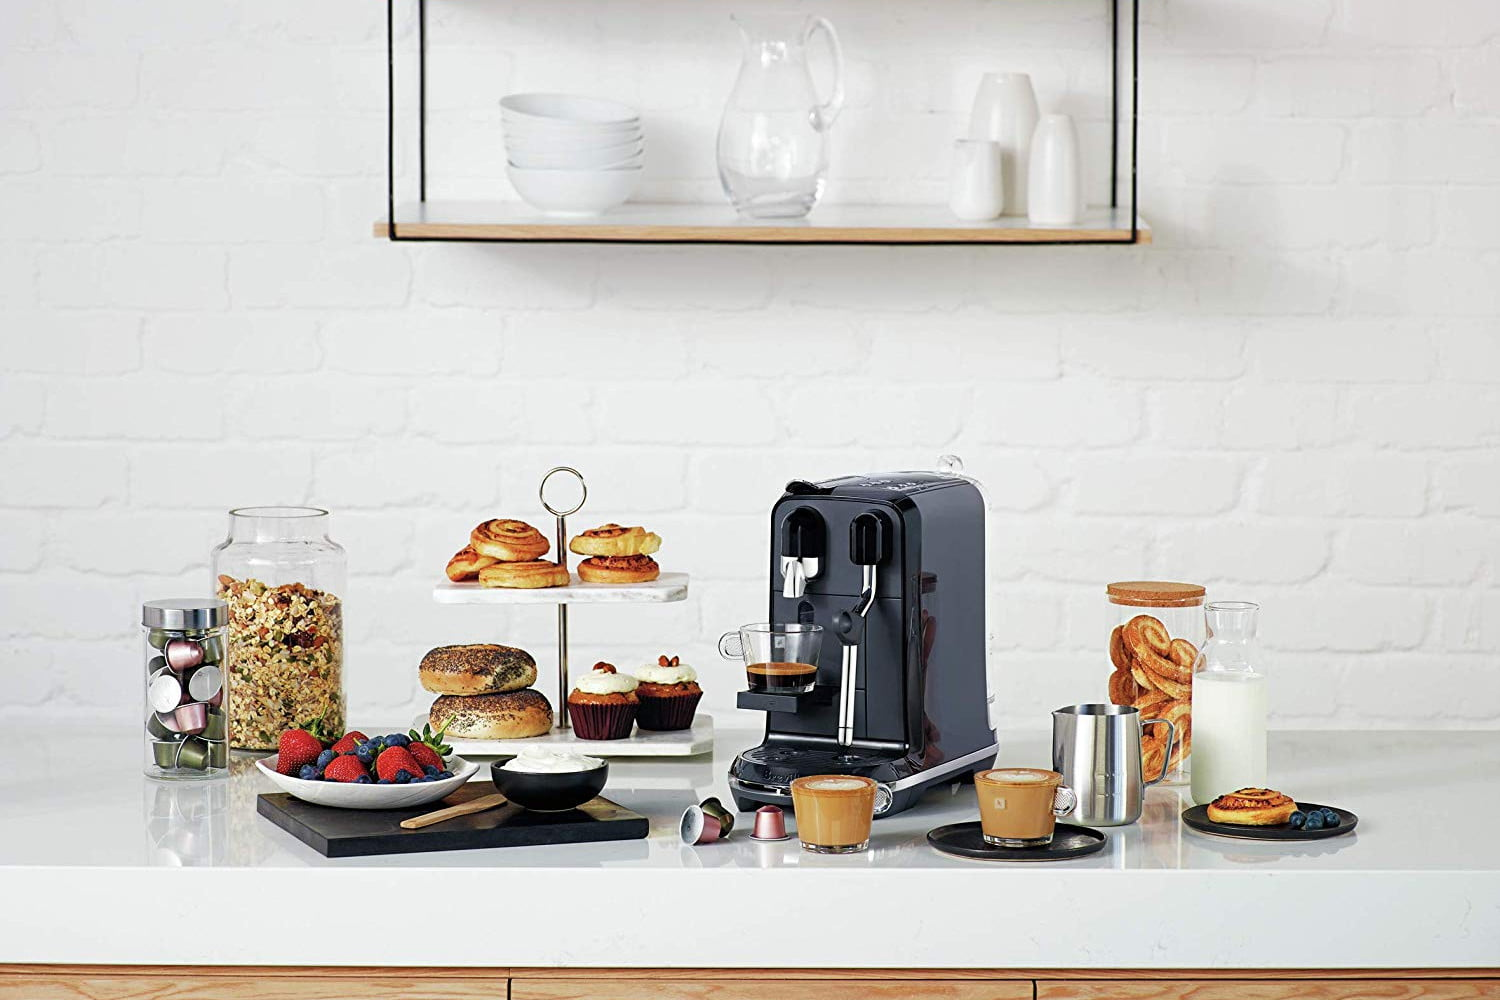 Breville kitchen products up to 52% off on Amazon's 12 Days of Deals